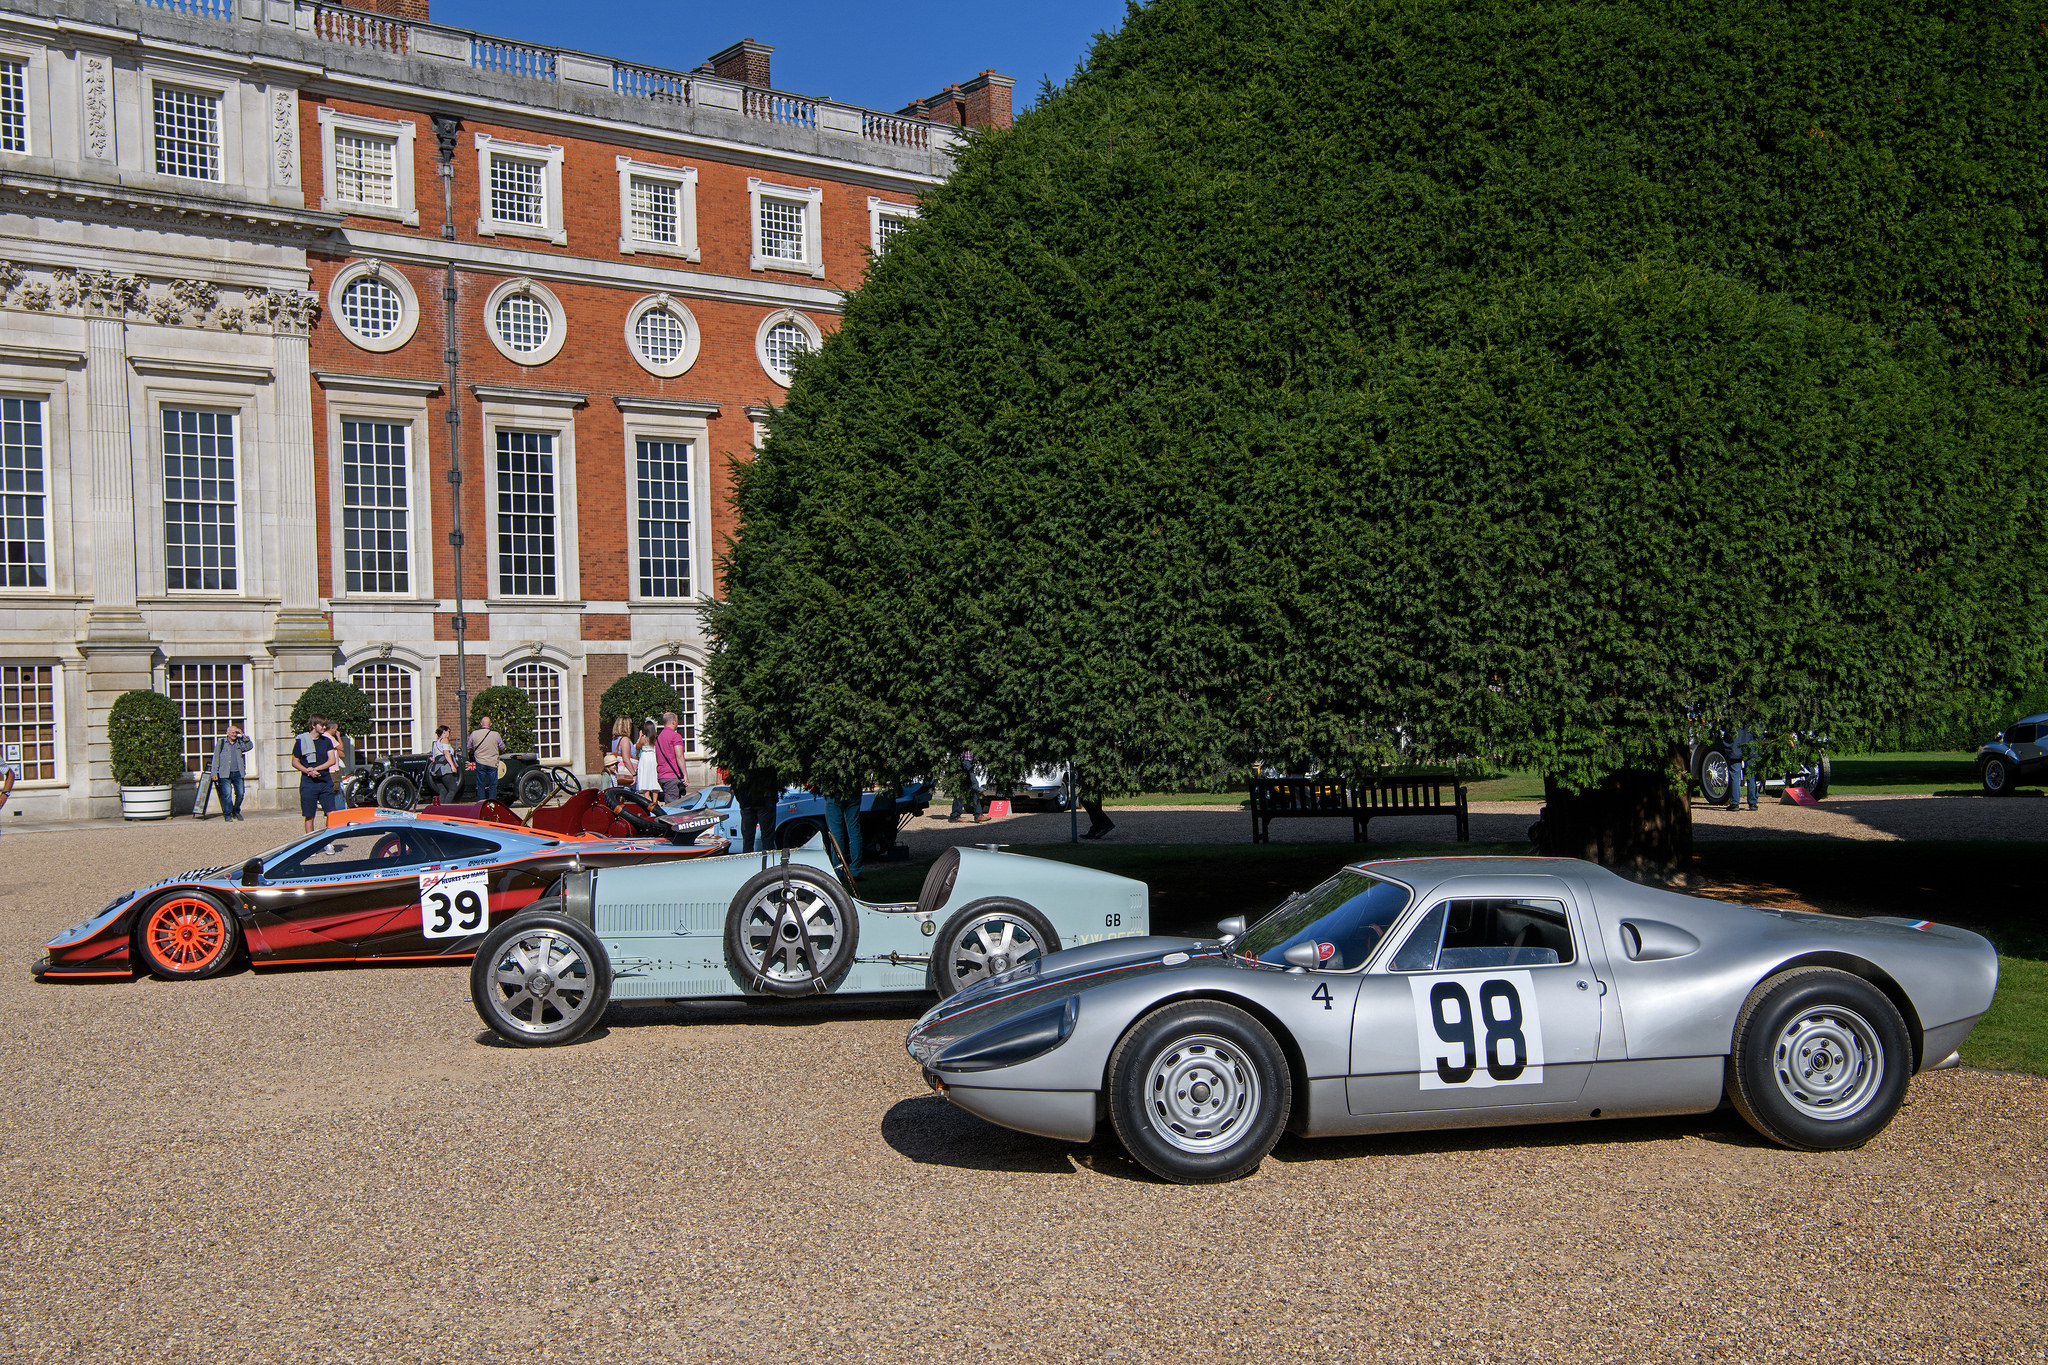 TICKETS ON SALE FOR THE UK'S FINEST CONCOURS EVENT